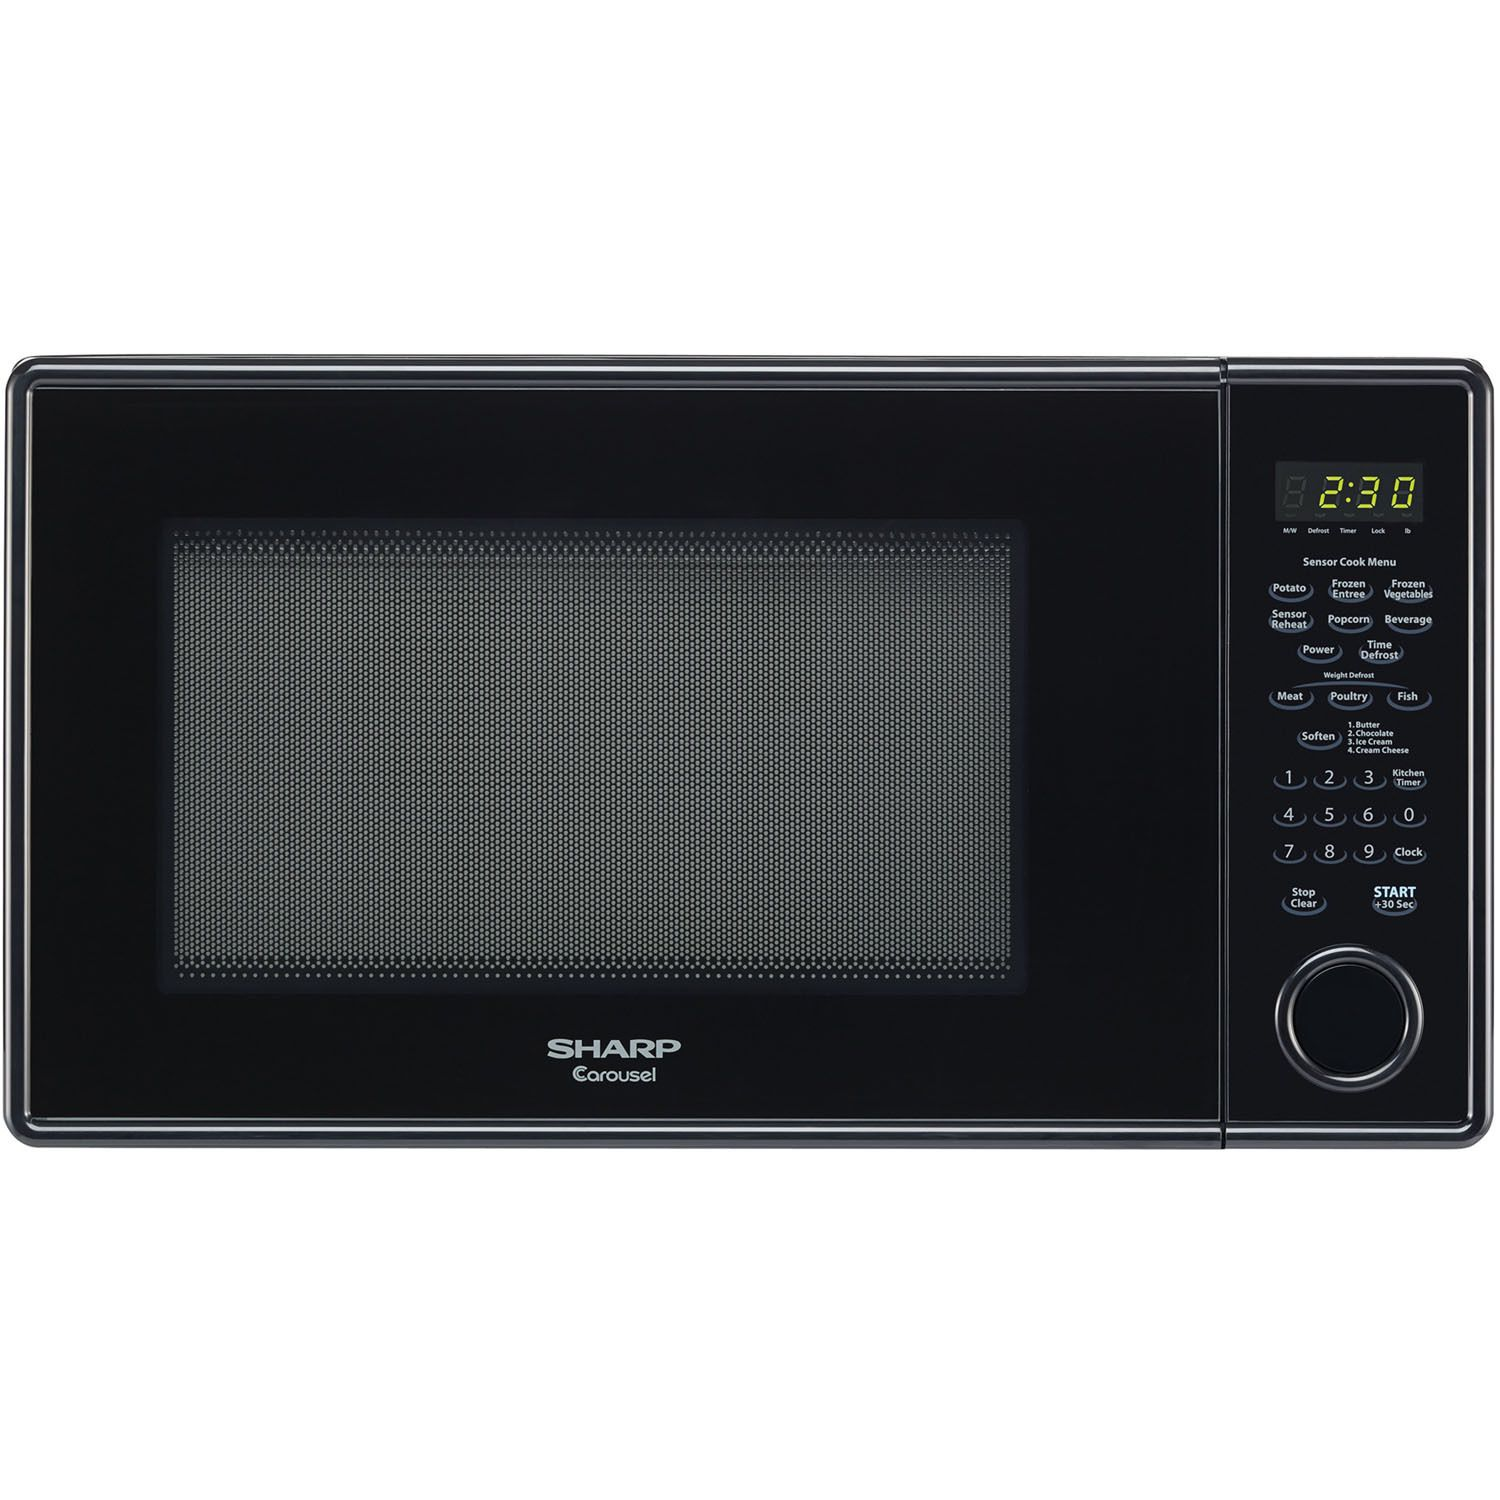 Online Shopping Bedding Furniture Electronics Jewelry Clothing More Countertop Microwave Oven Microwave Oven Microwave